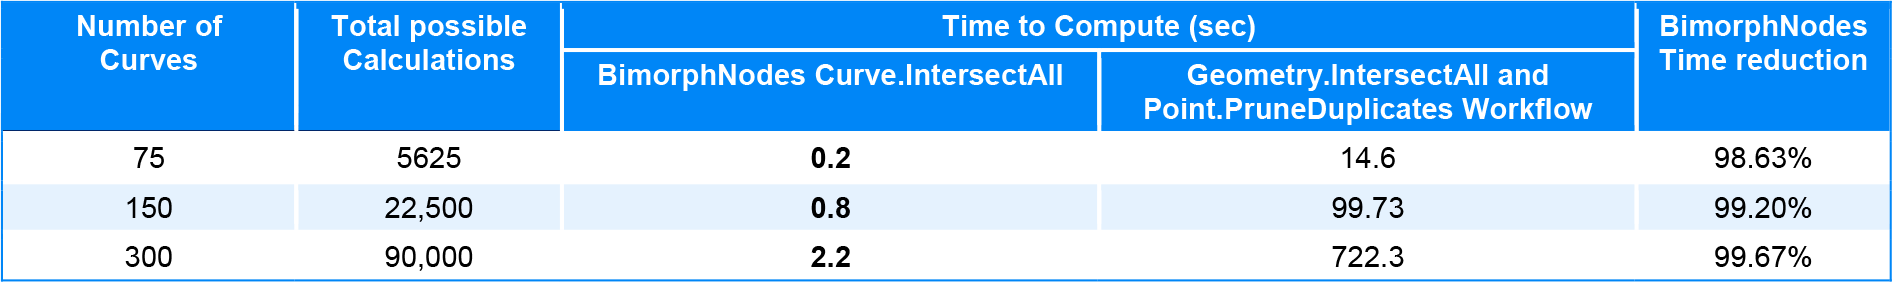 Curve Intersect All Bimorph Nodes v2.1 Dynamo BIM for Revit Performance Benchmark